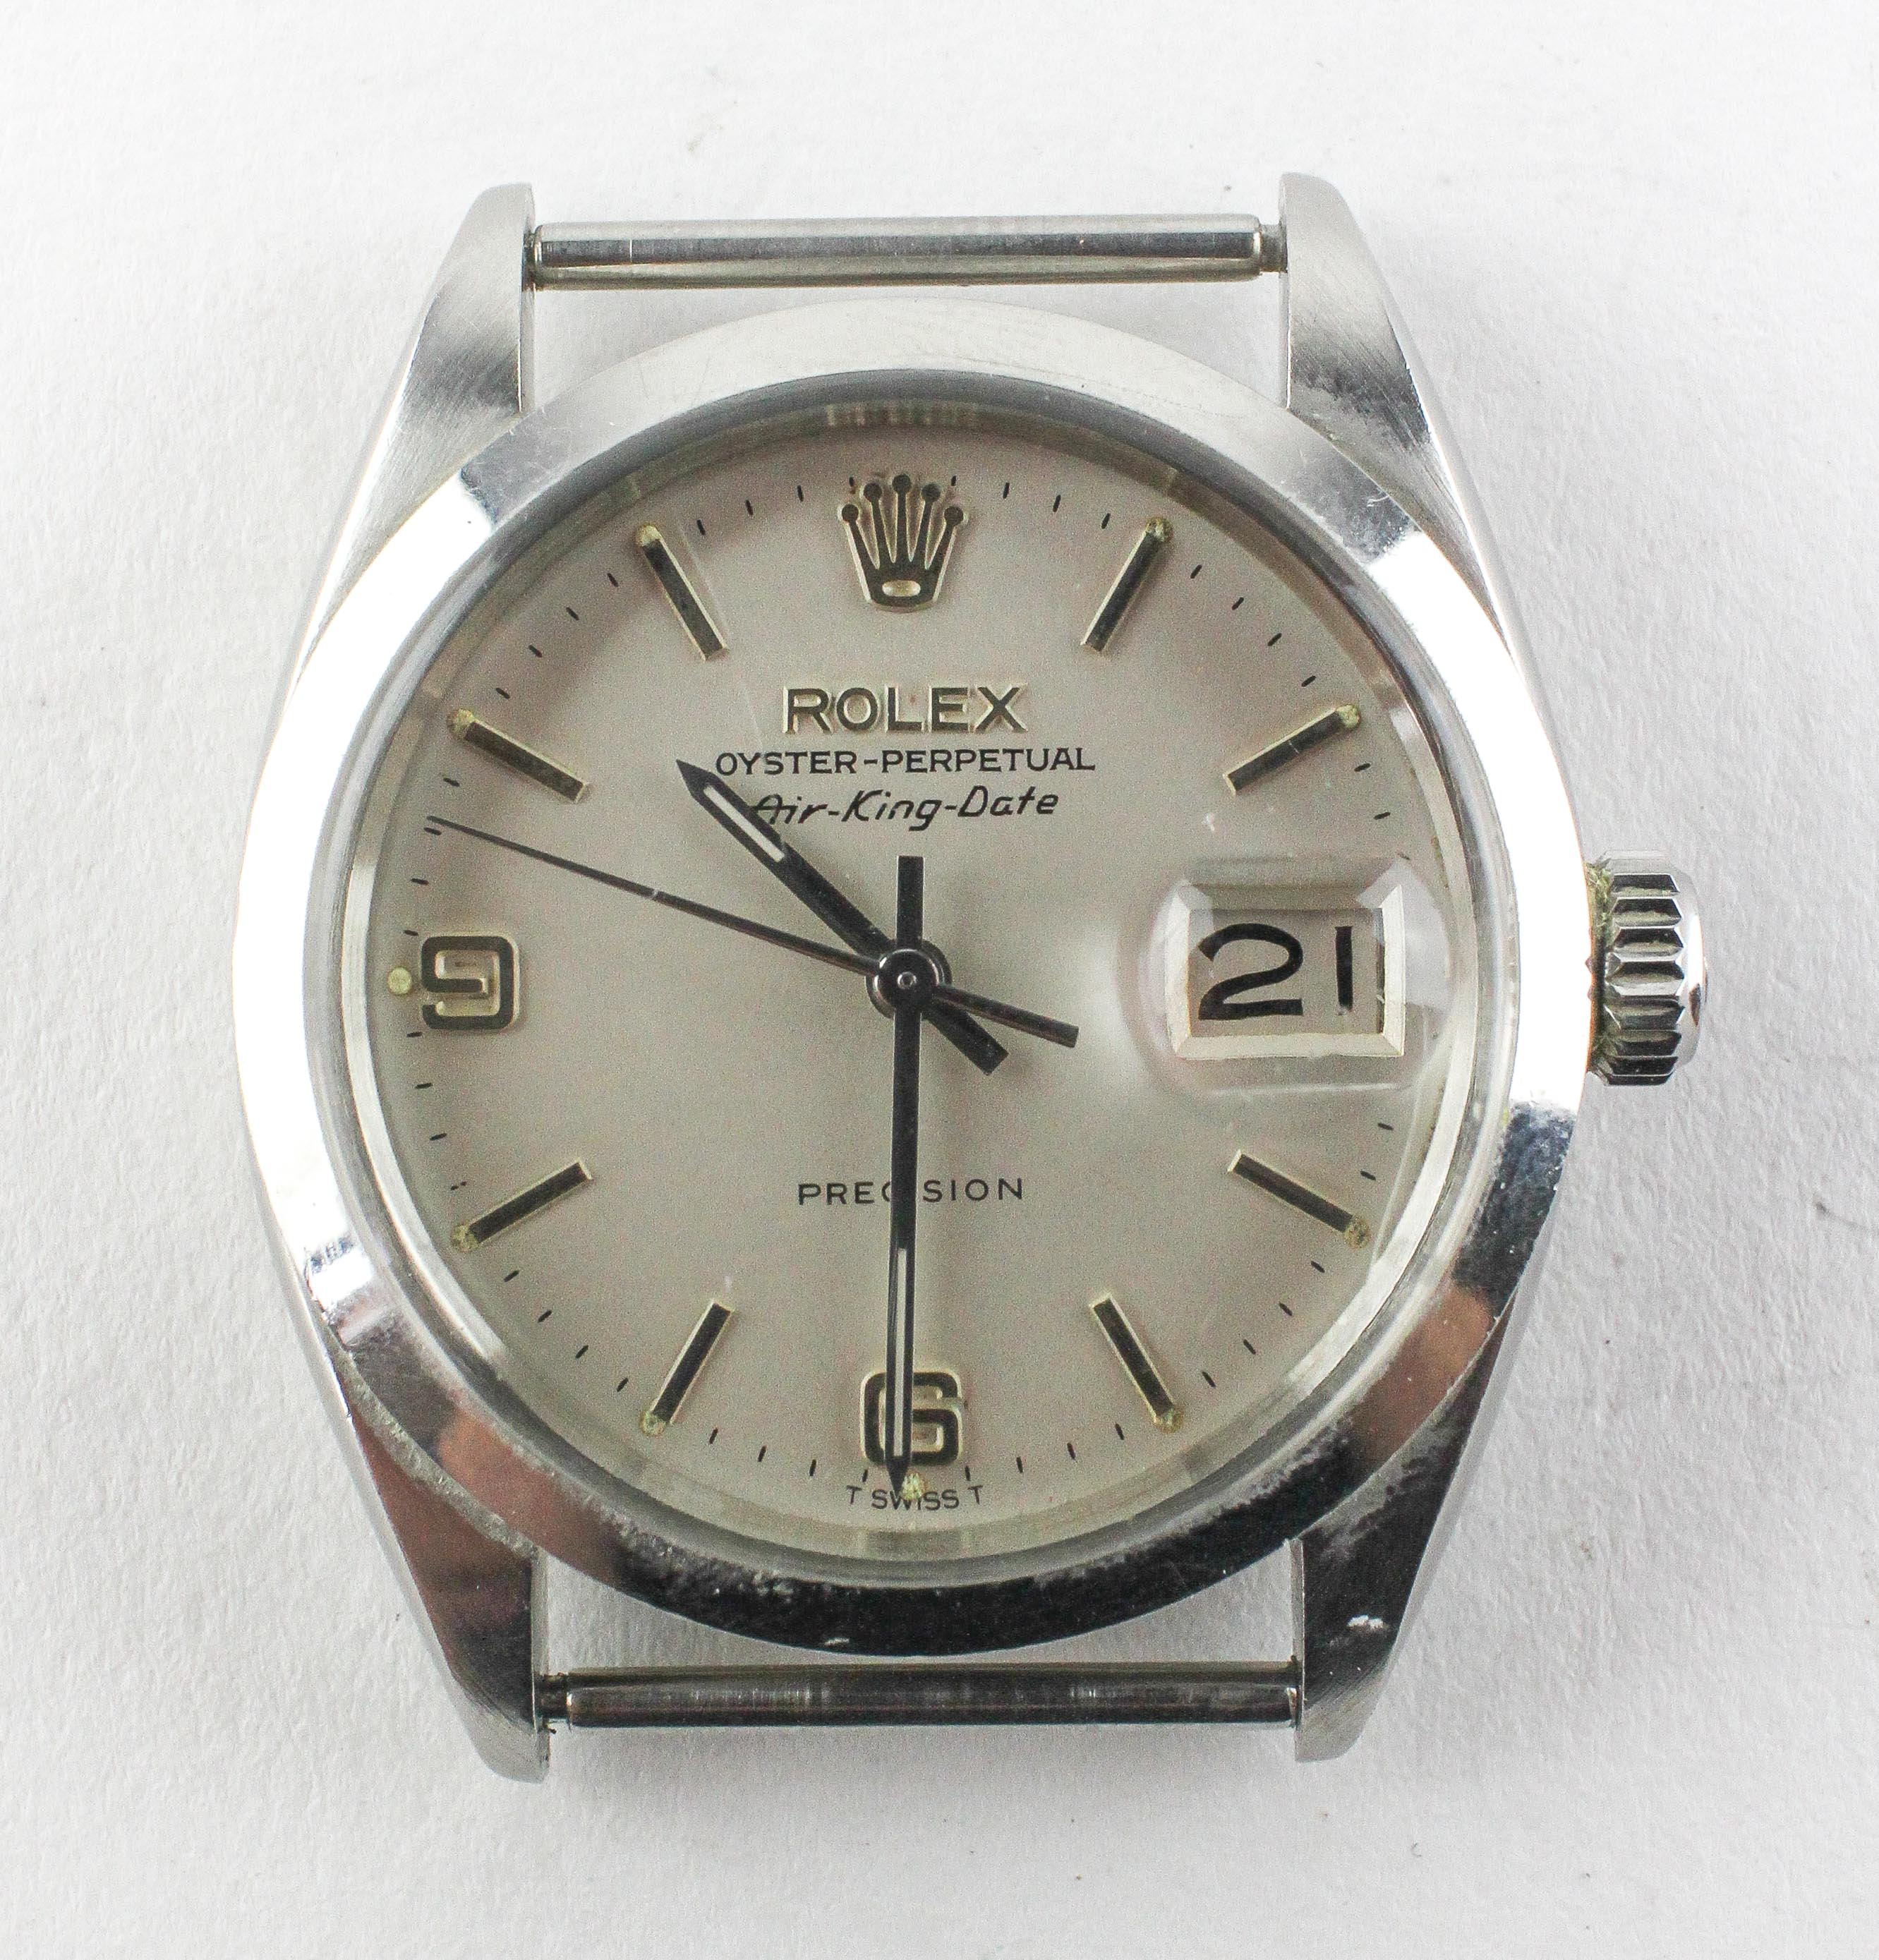 A stainless steel rolex oyster perpetual air king date wristwatch.